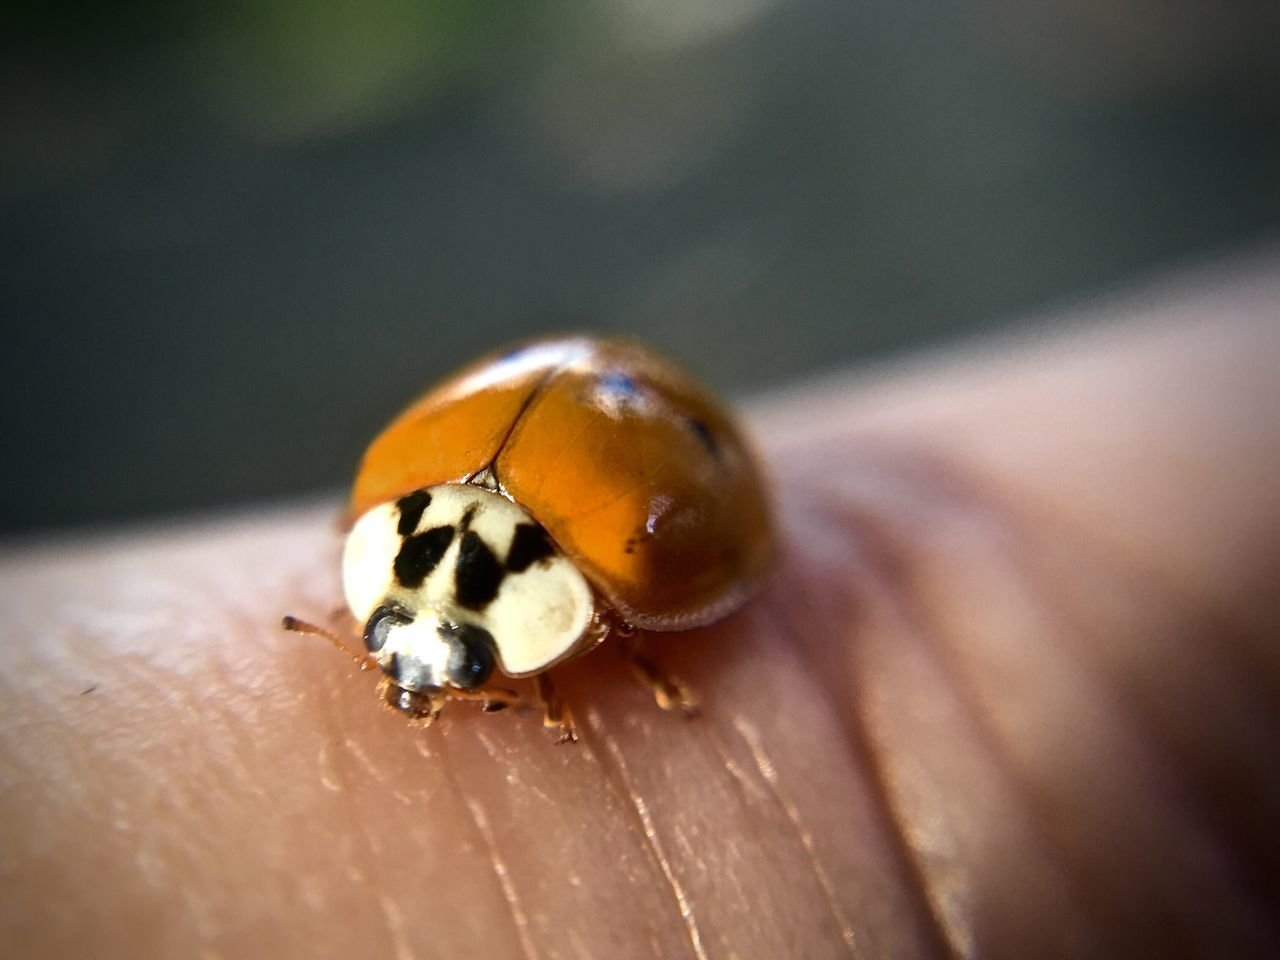 one animal, animals in the wild, insect, animal themes, animal wildlife, close-up, wildlife, ladybug, tiny, day, outdoors, human body part, nature, one person, human hand